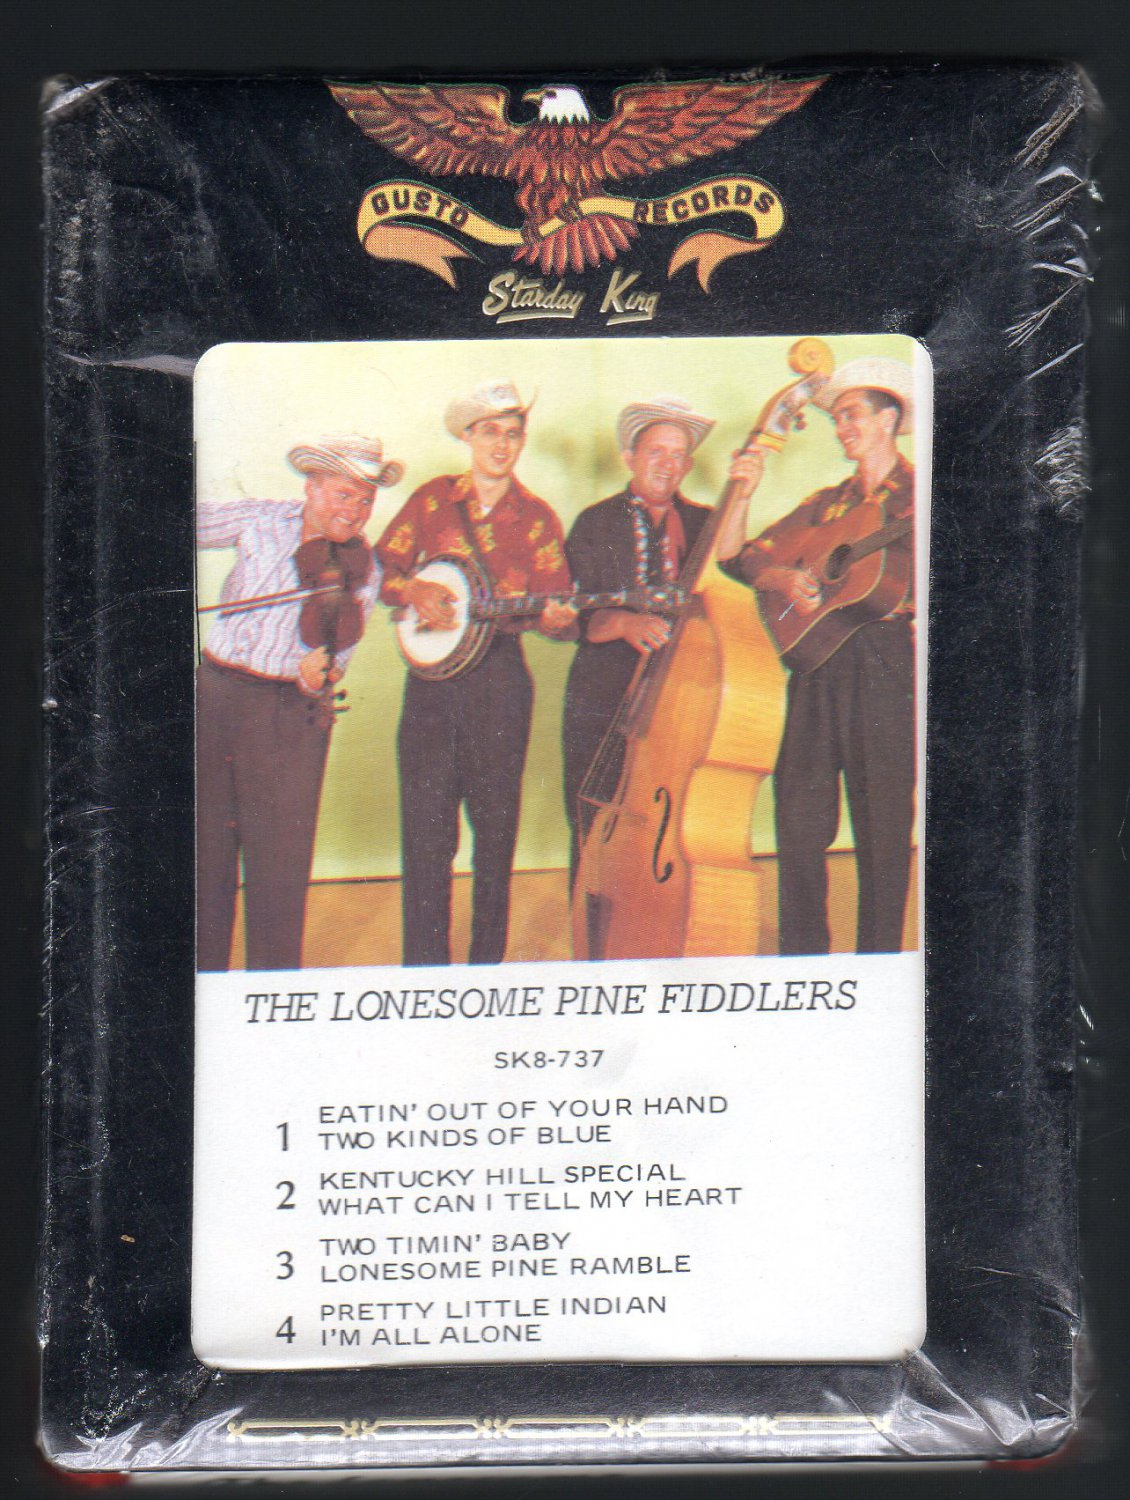 Lonesome Pine Fiddlers - The Lonesome Pine Fiddlers Part 2 1961 STARDAY Sealed A32 8-TRACK TAPE